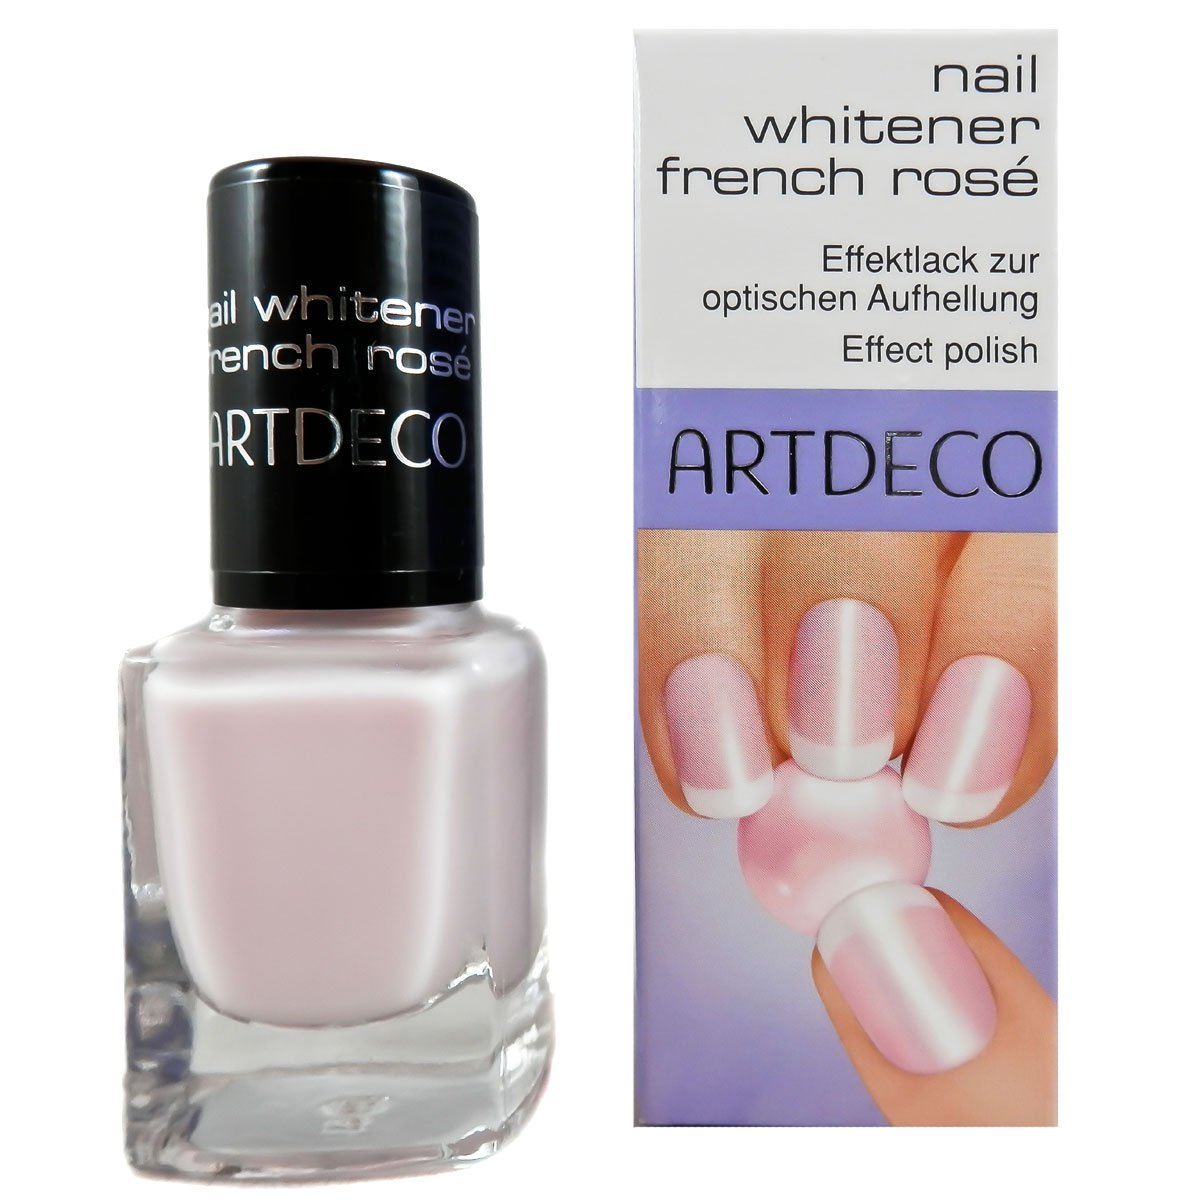 Artdeco Nail Whitener French Rose, 1er Pack (1 x 10 ml) 4019674618721